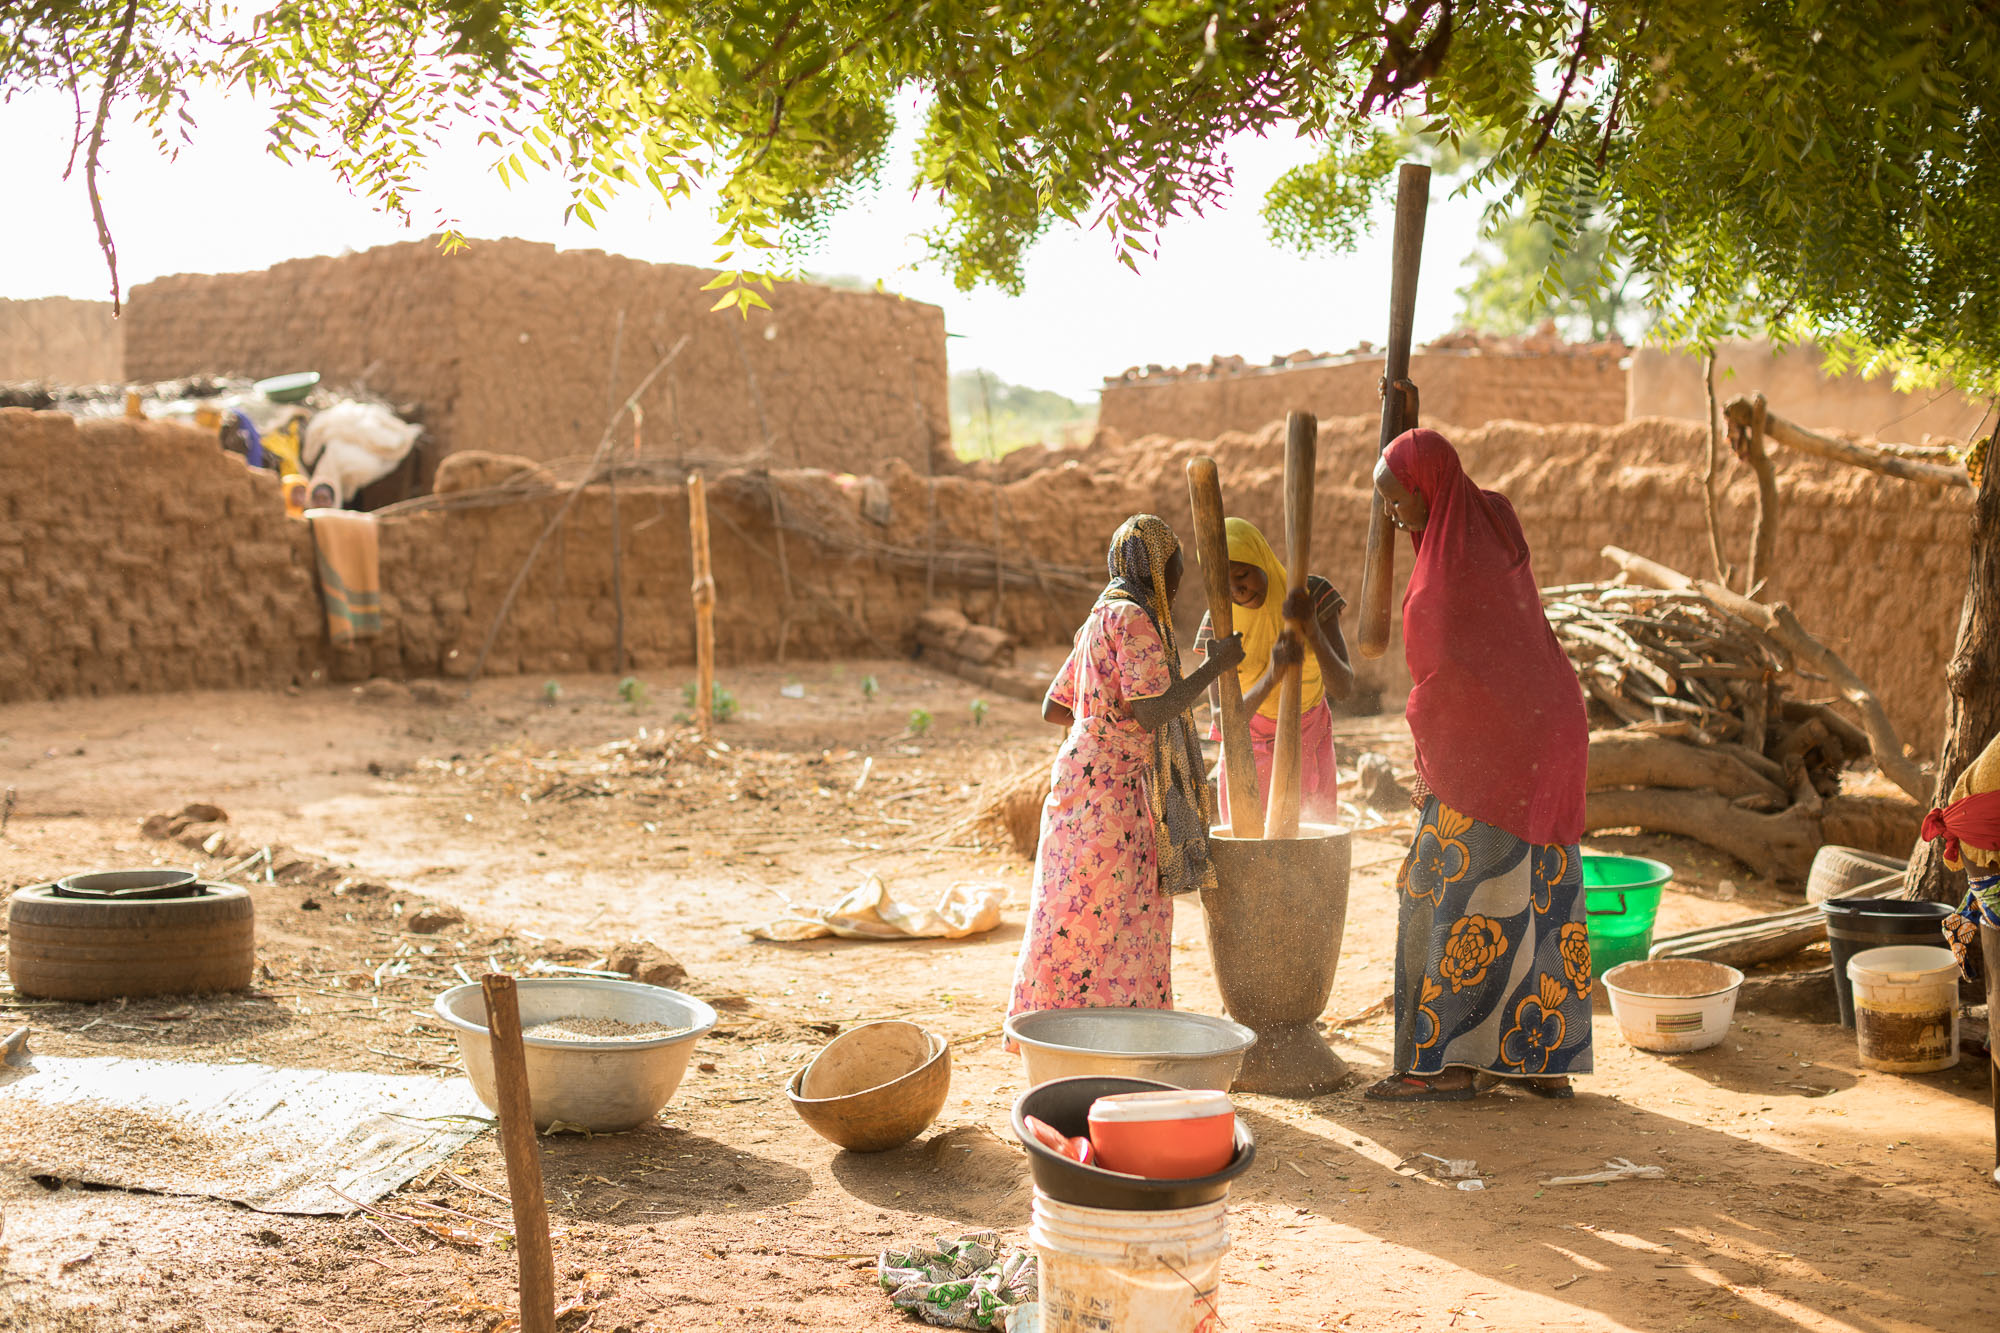 Women and girls pound cowpeas in a village in Tahoua Region, Niger.